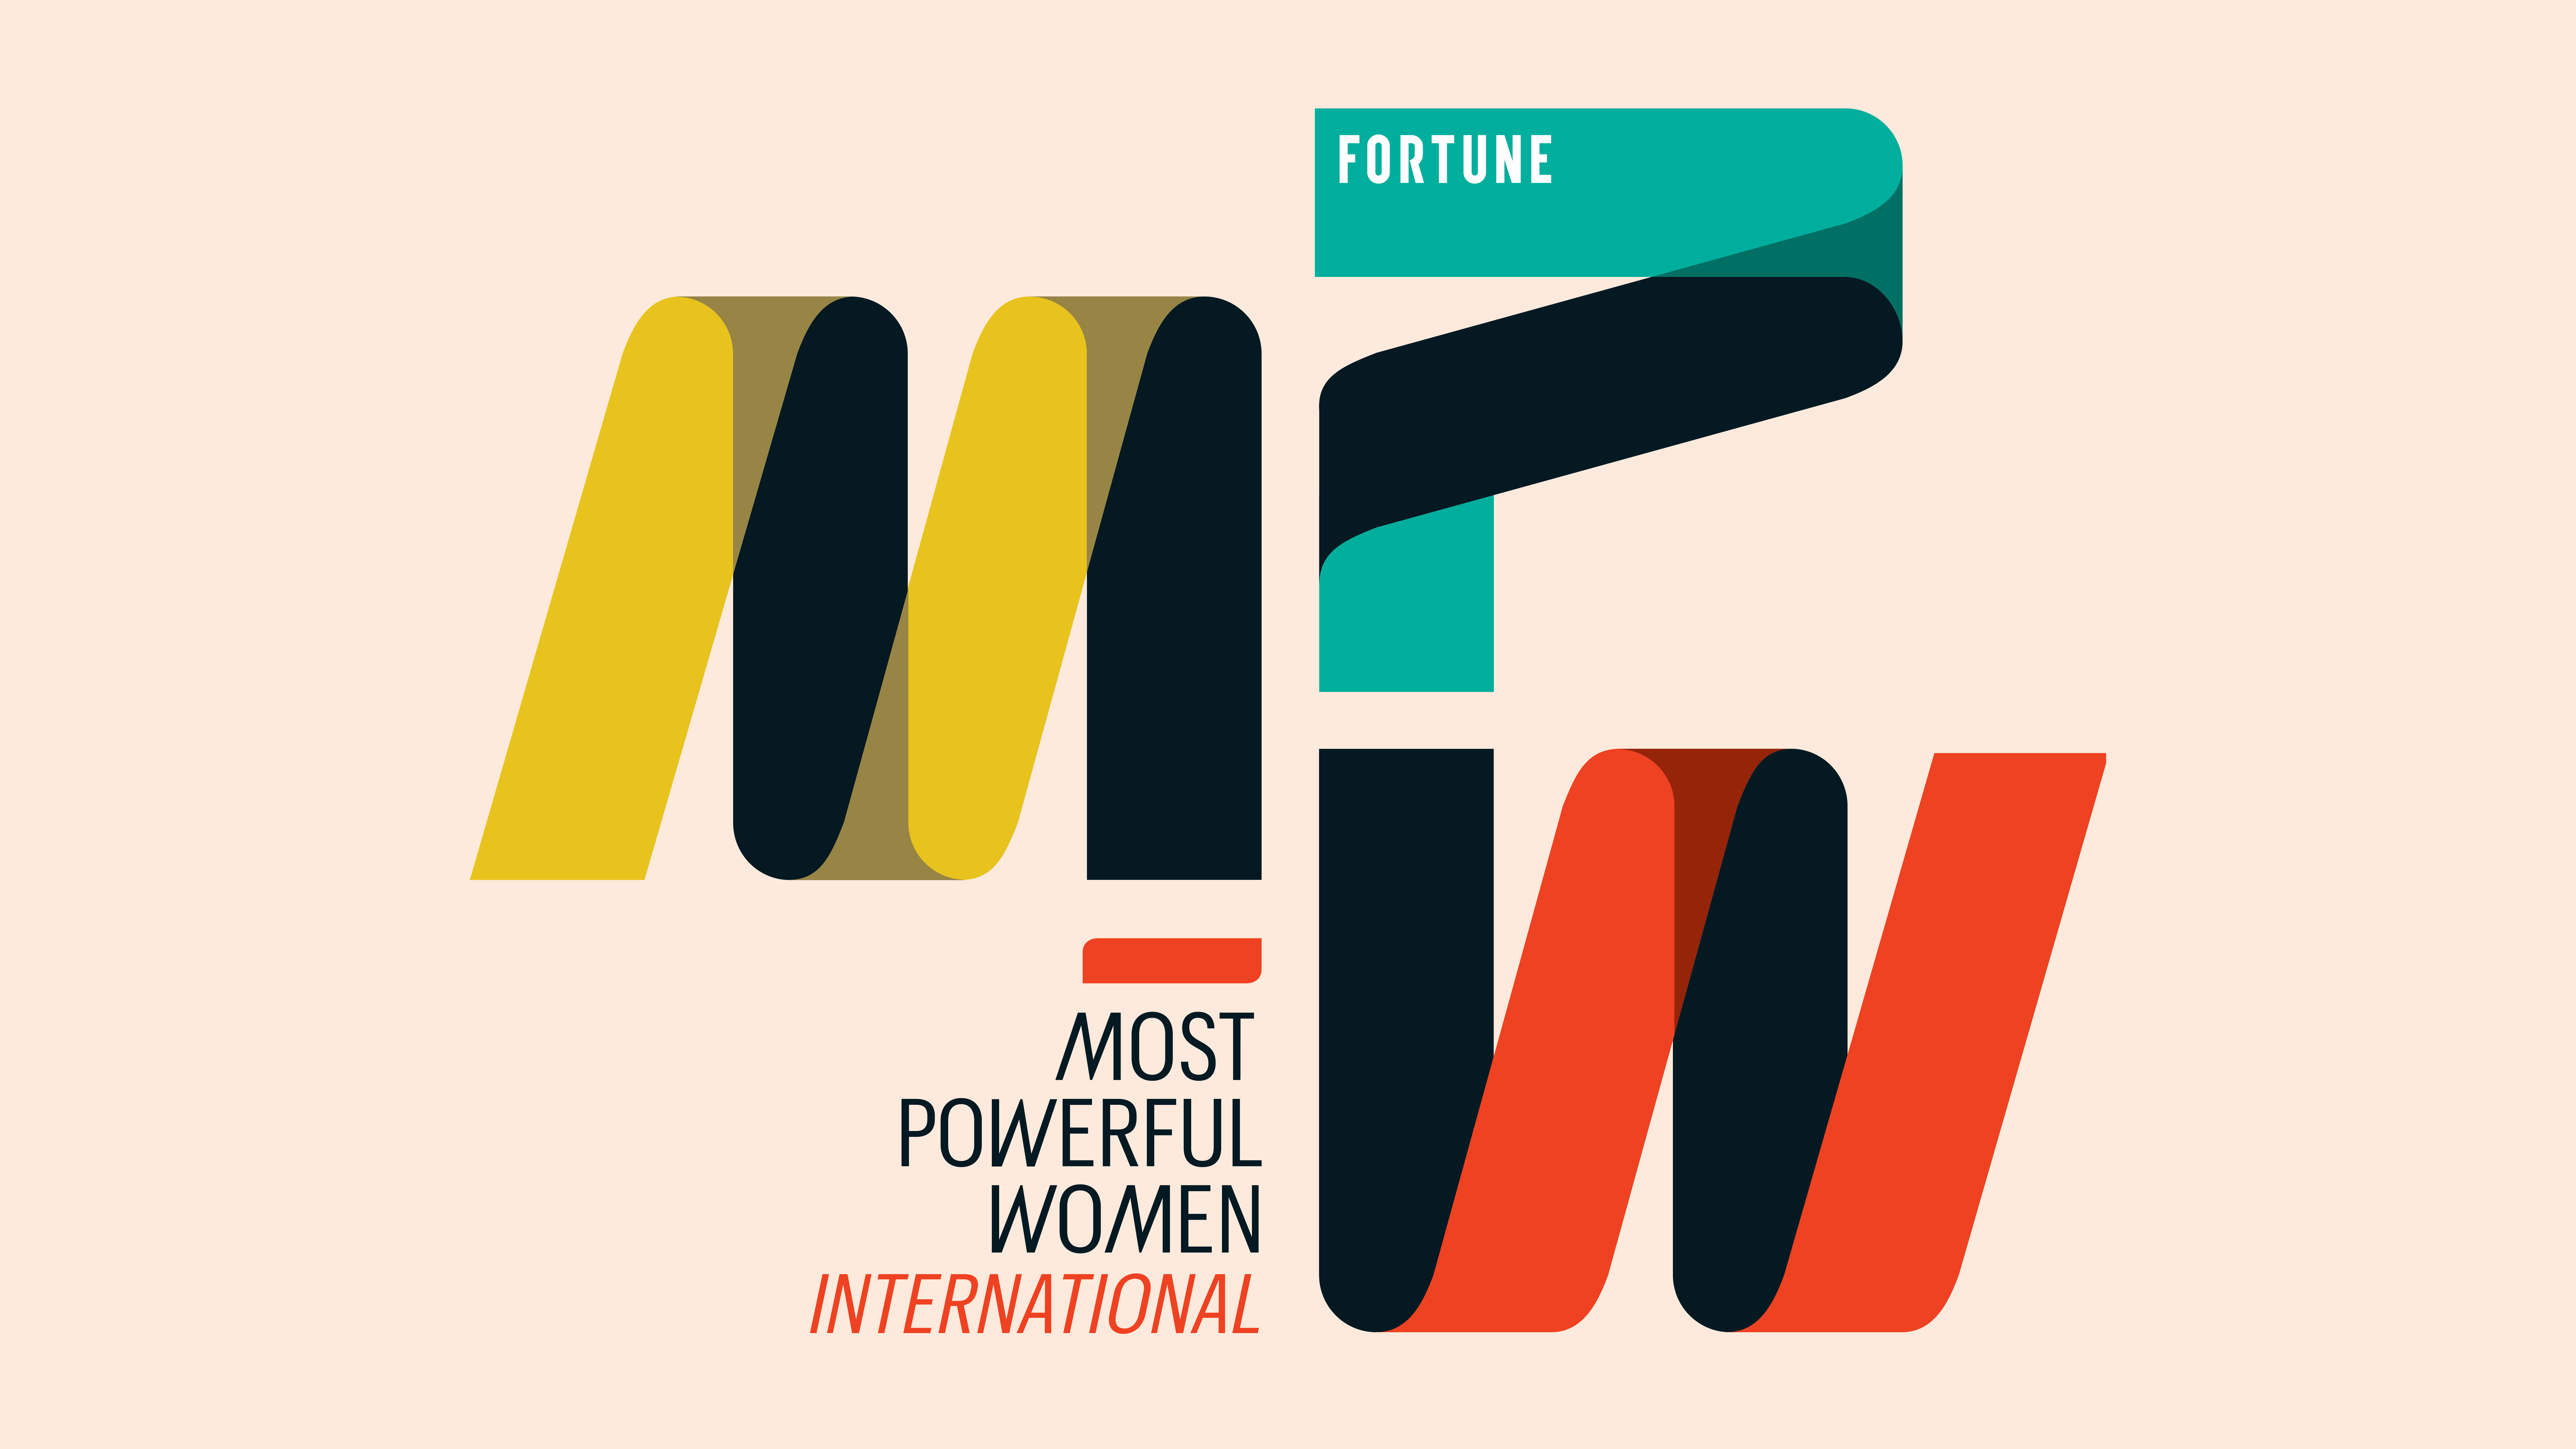 Fortune Most Powerful Women International